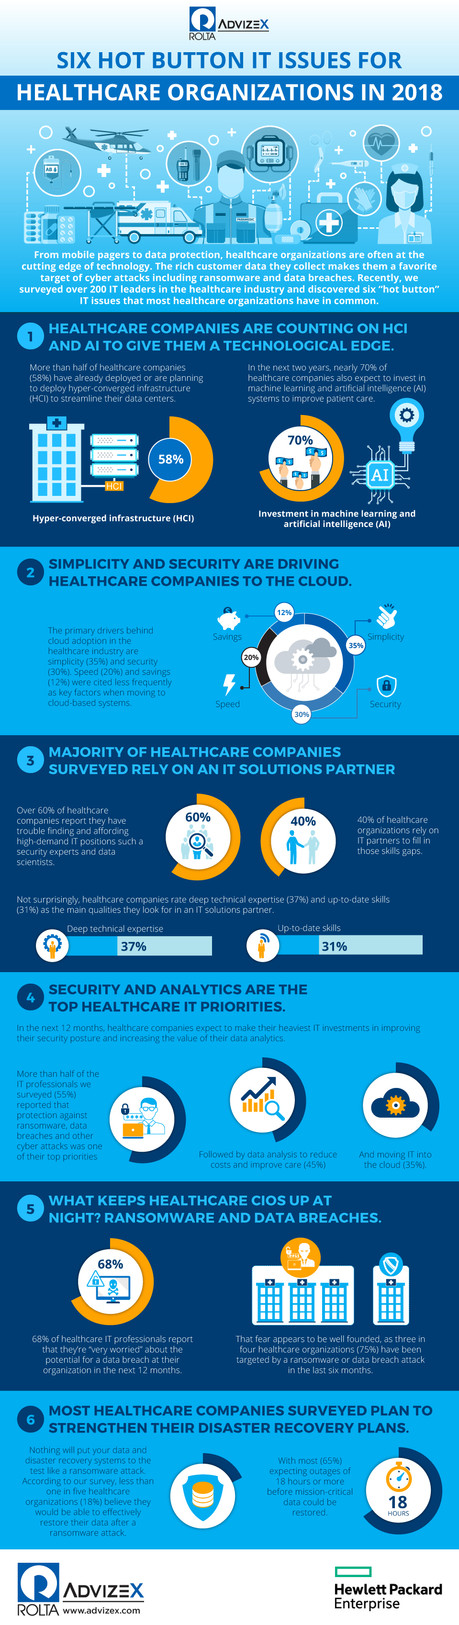 Six Hot Button IT Issues for Healthcare Organizations in 2018